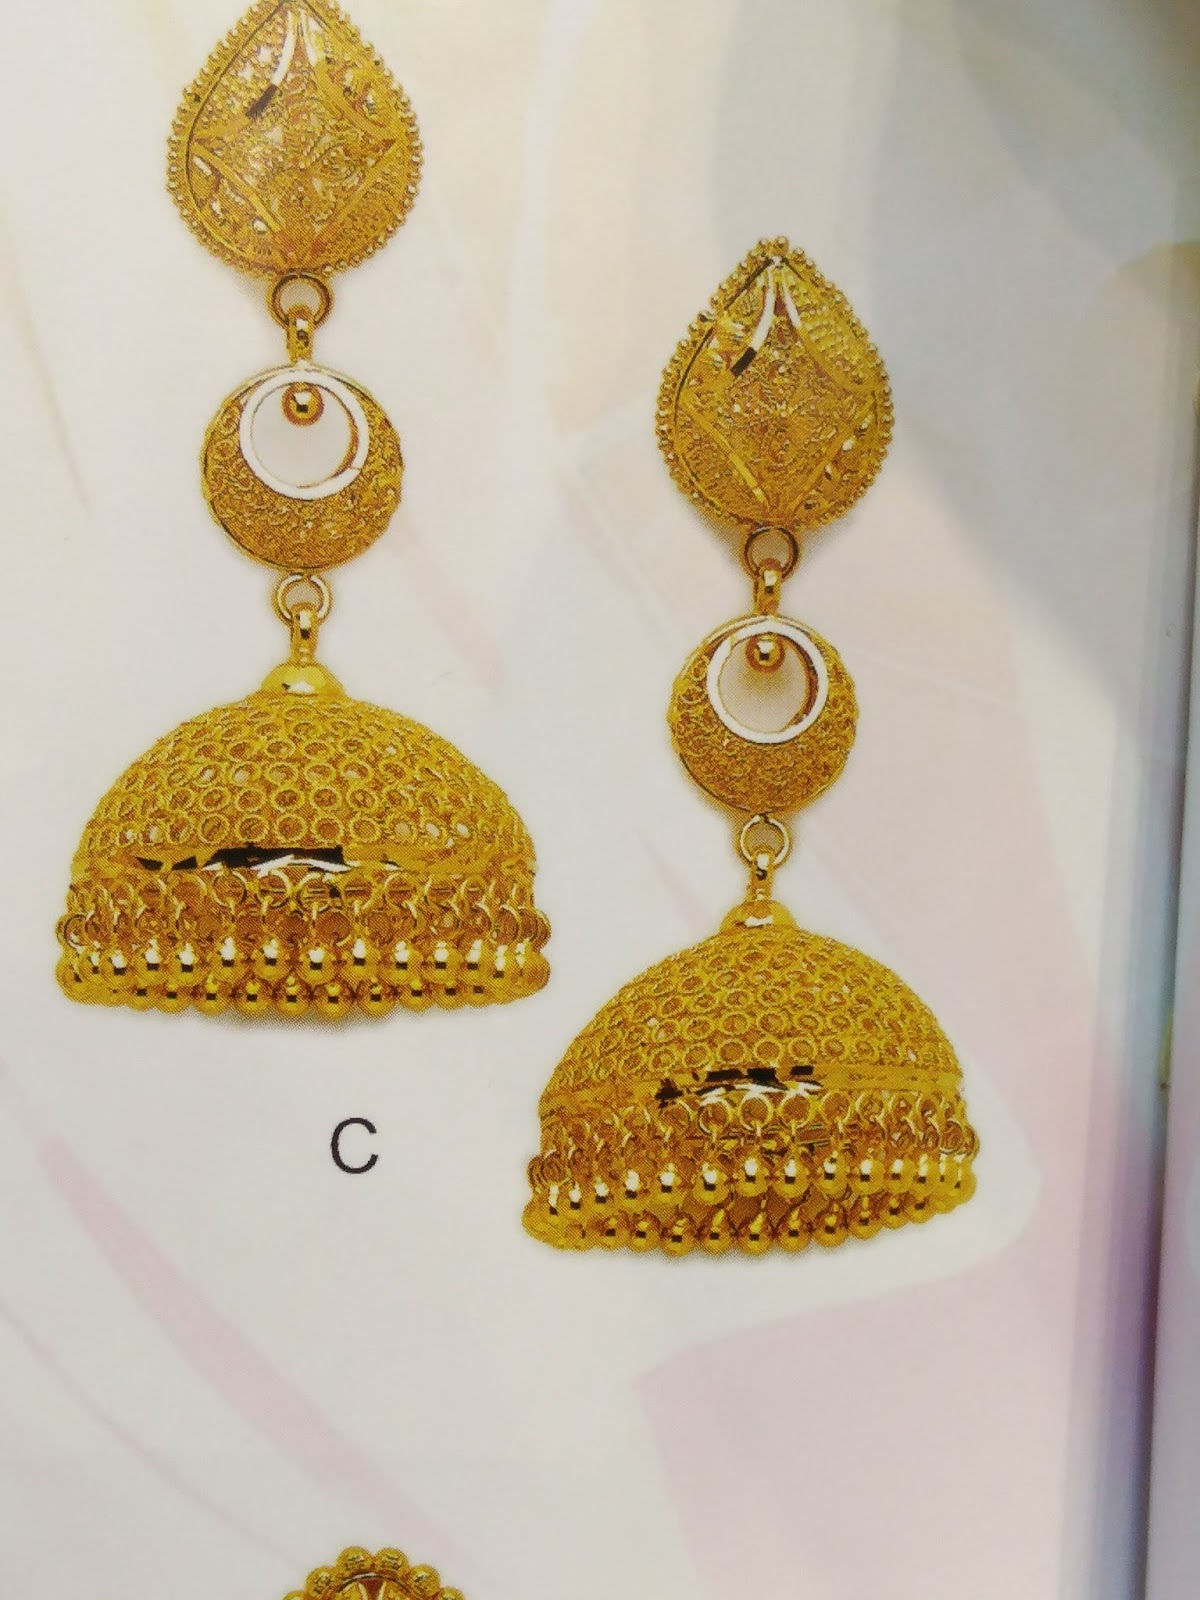 Good jewellery business keise kare? how to start a gold jewellery ...